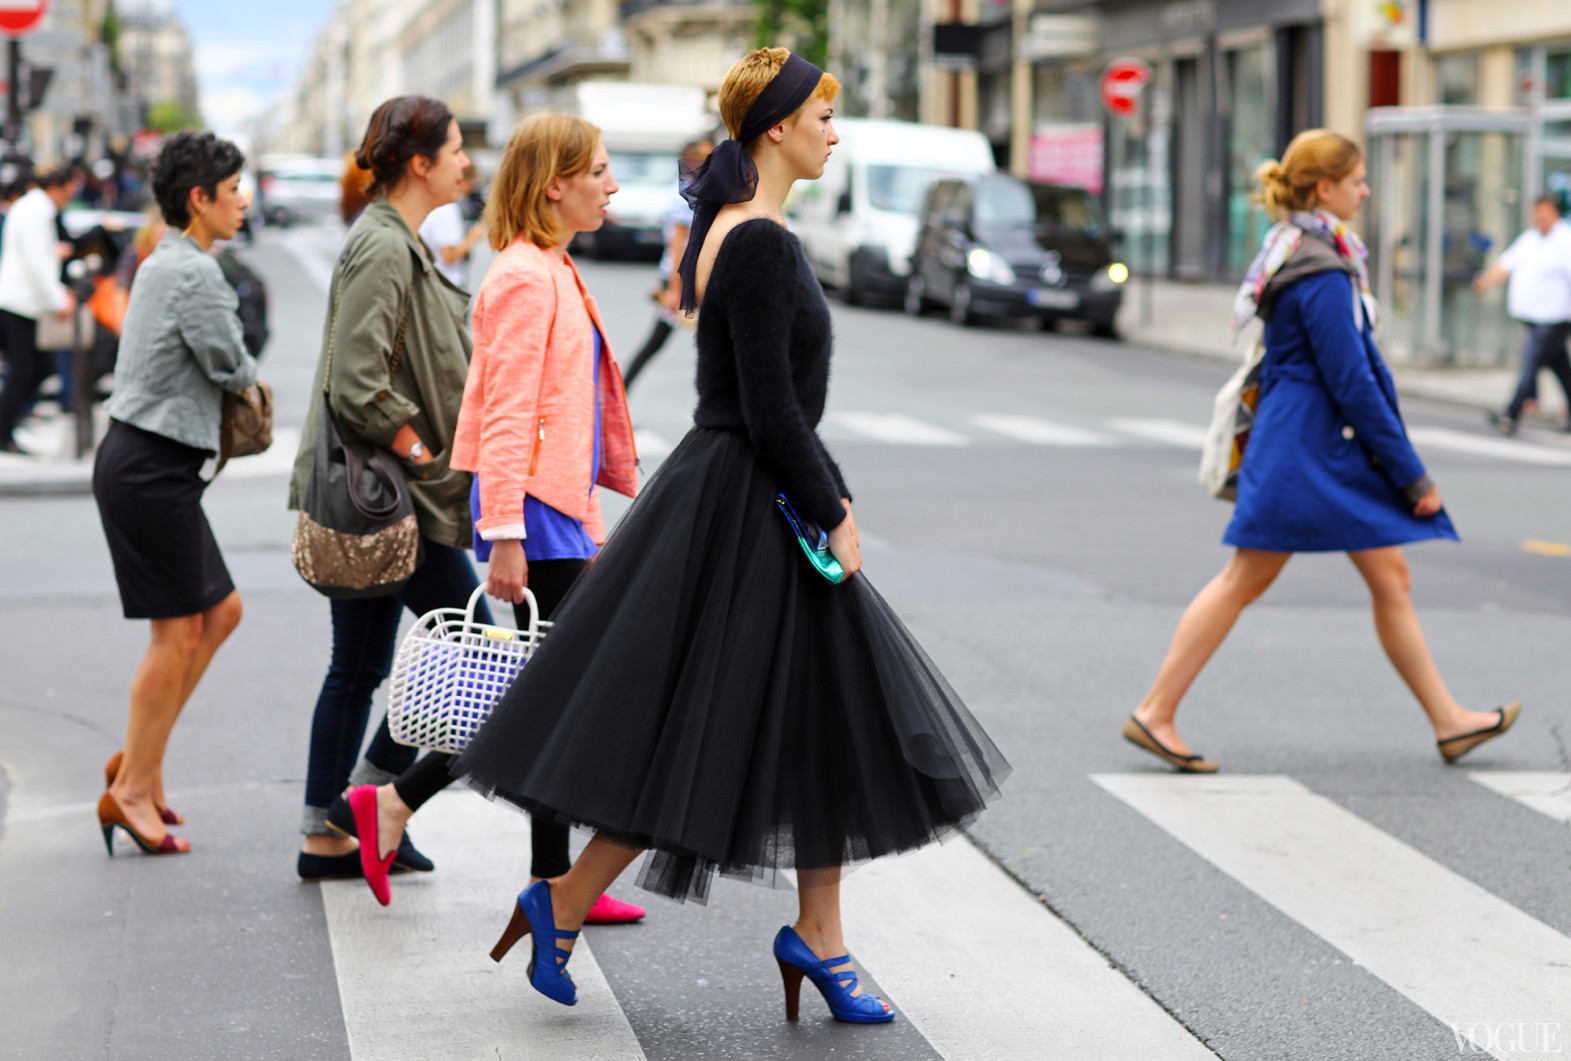 Fashion week couture street style princess skirt